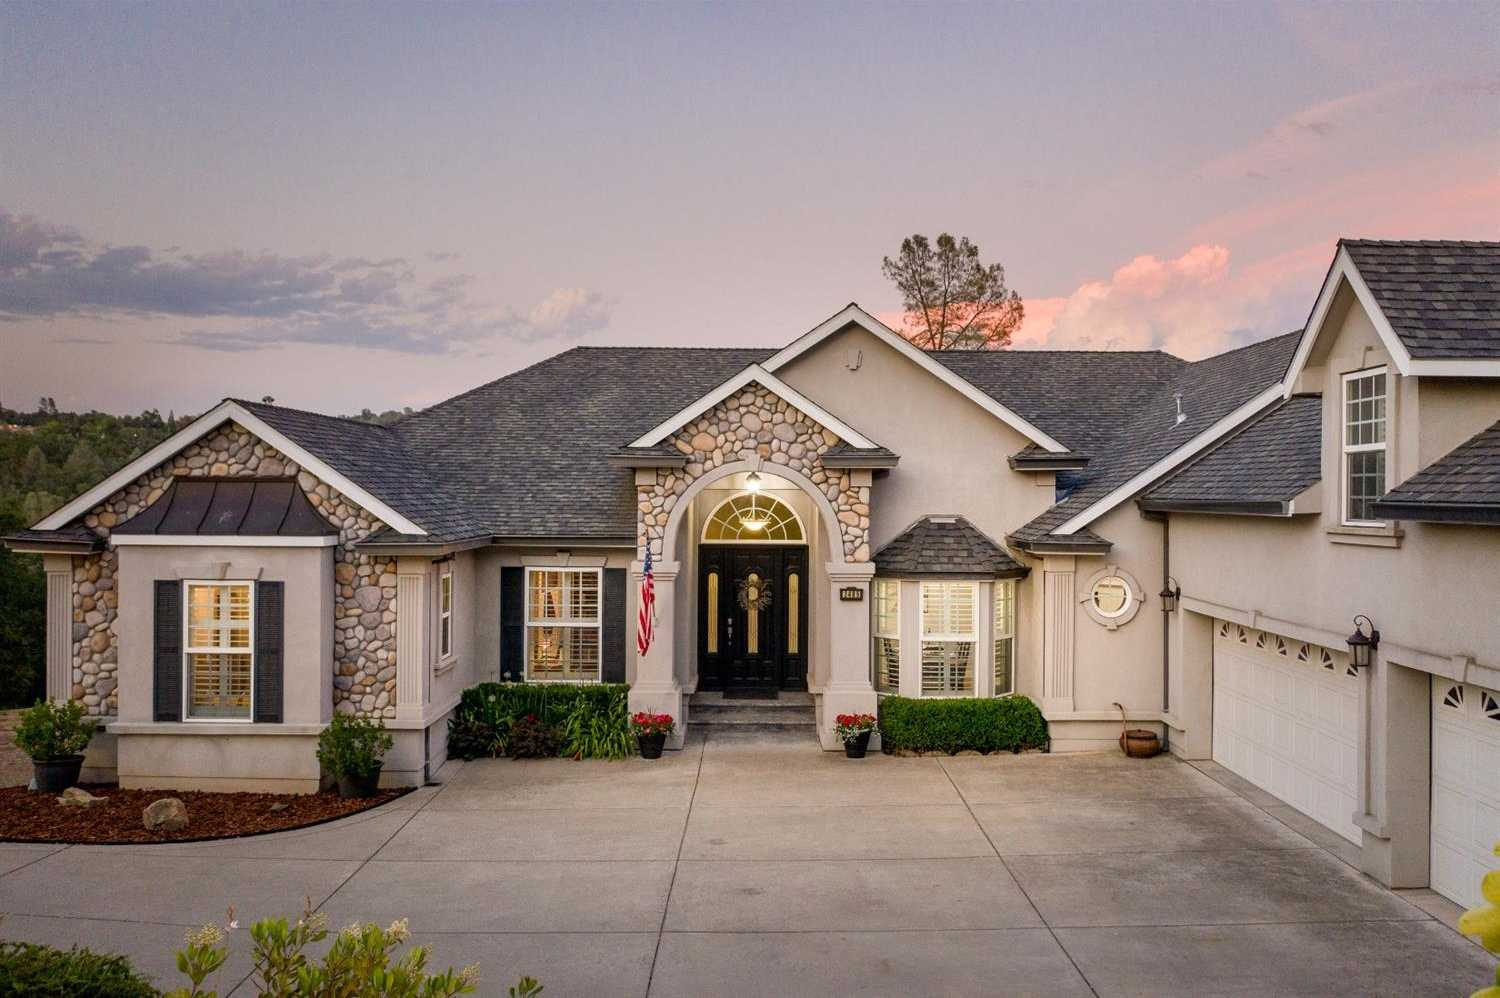 $875,000 - 5Br/5Ba -  for Sale in Placerville